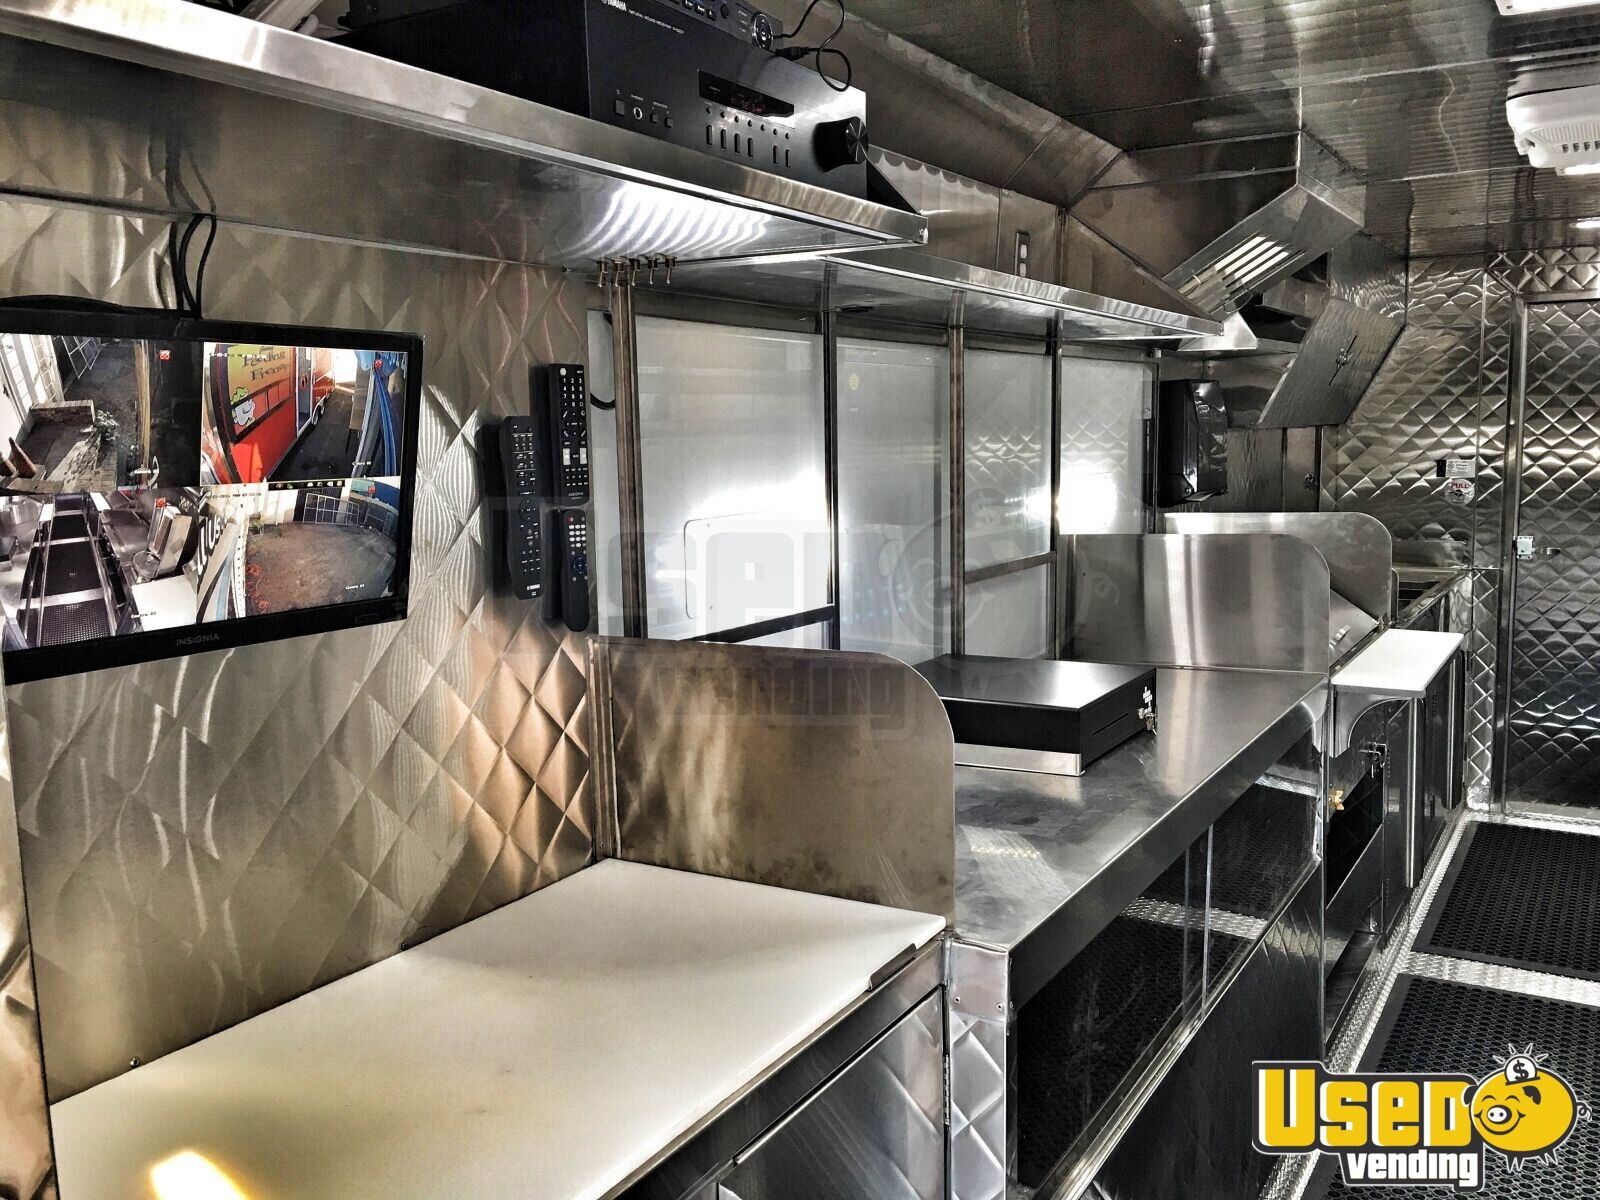 1995 Chevrolet Food Truck Concession Window California Diesel Engine for Sale - 3